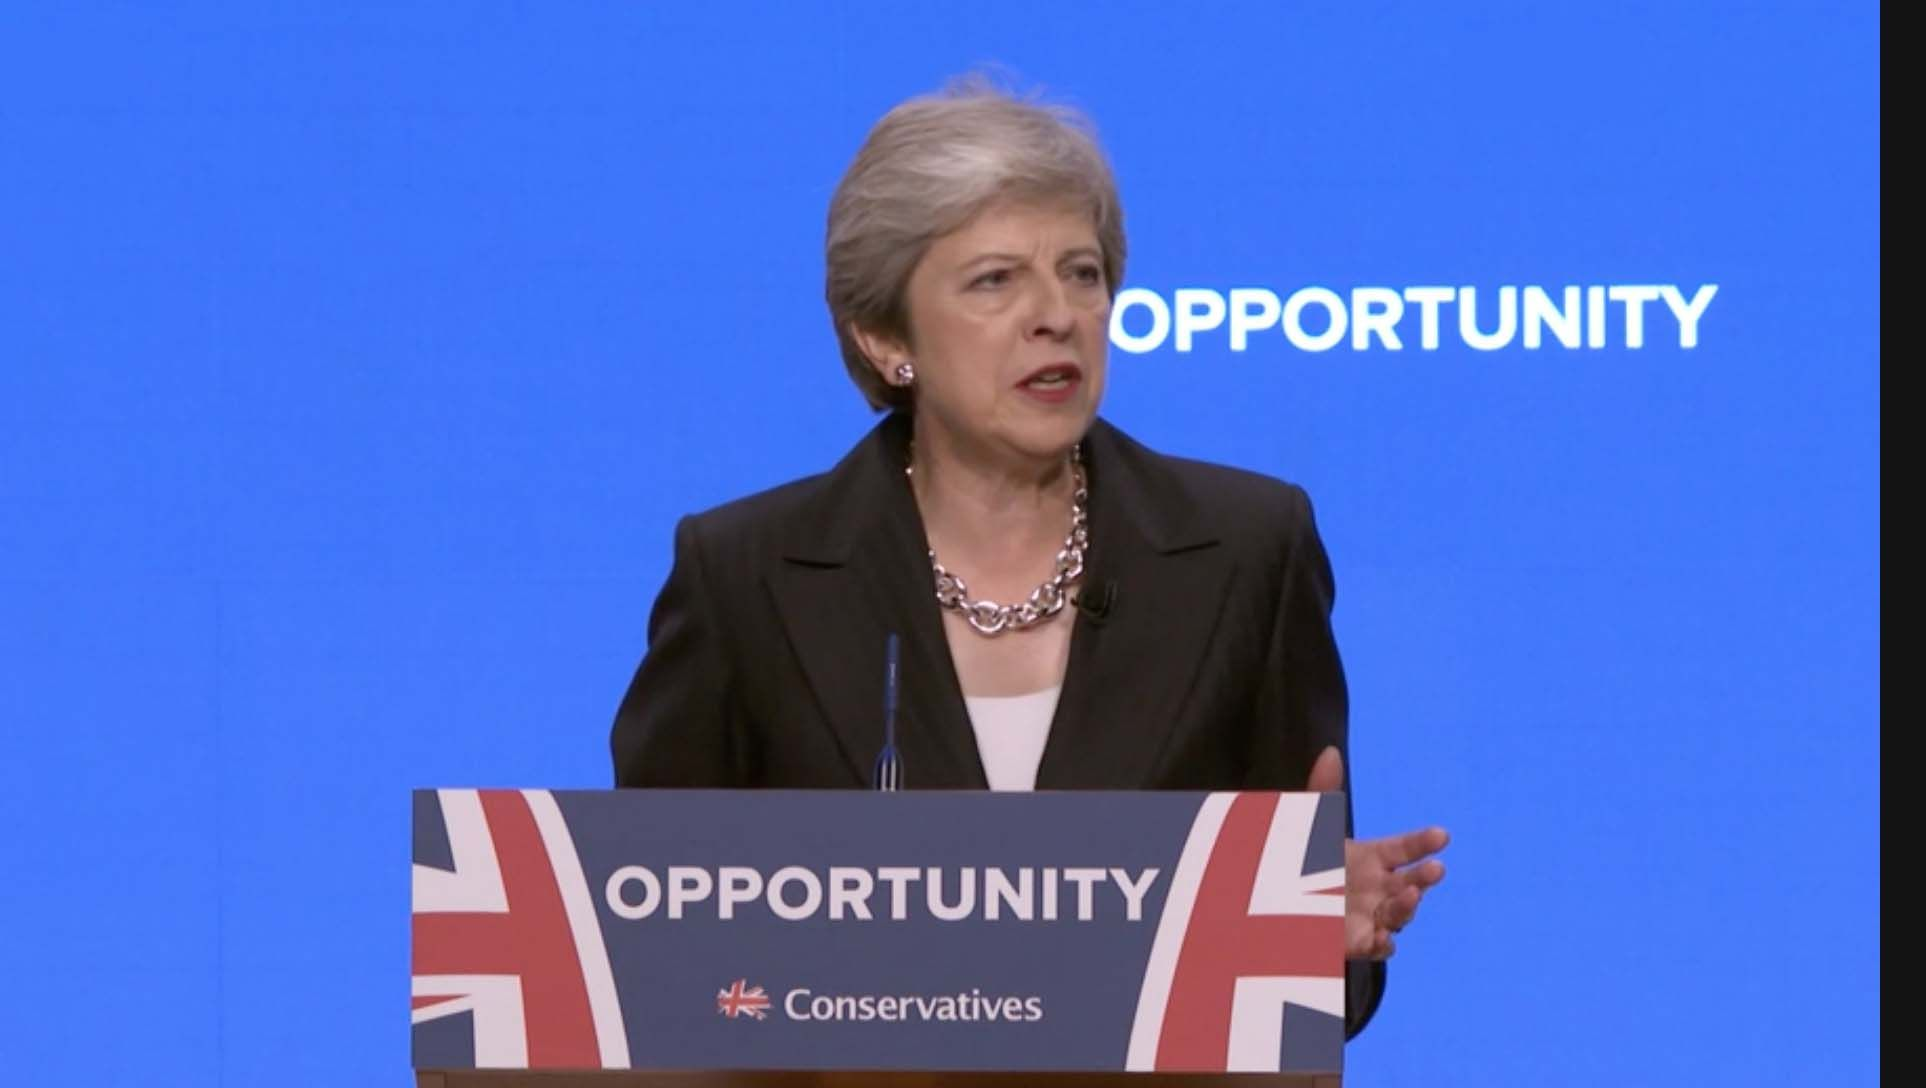 Theresa May's speech dominates the agenda for Sterling today